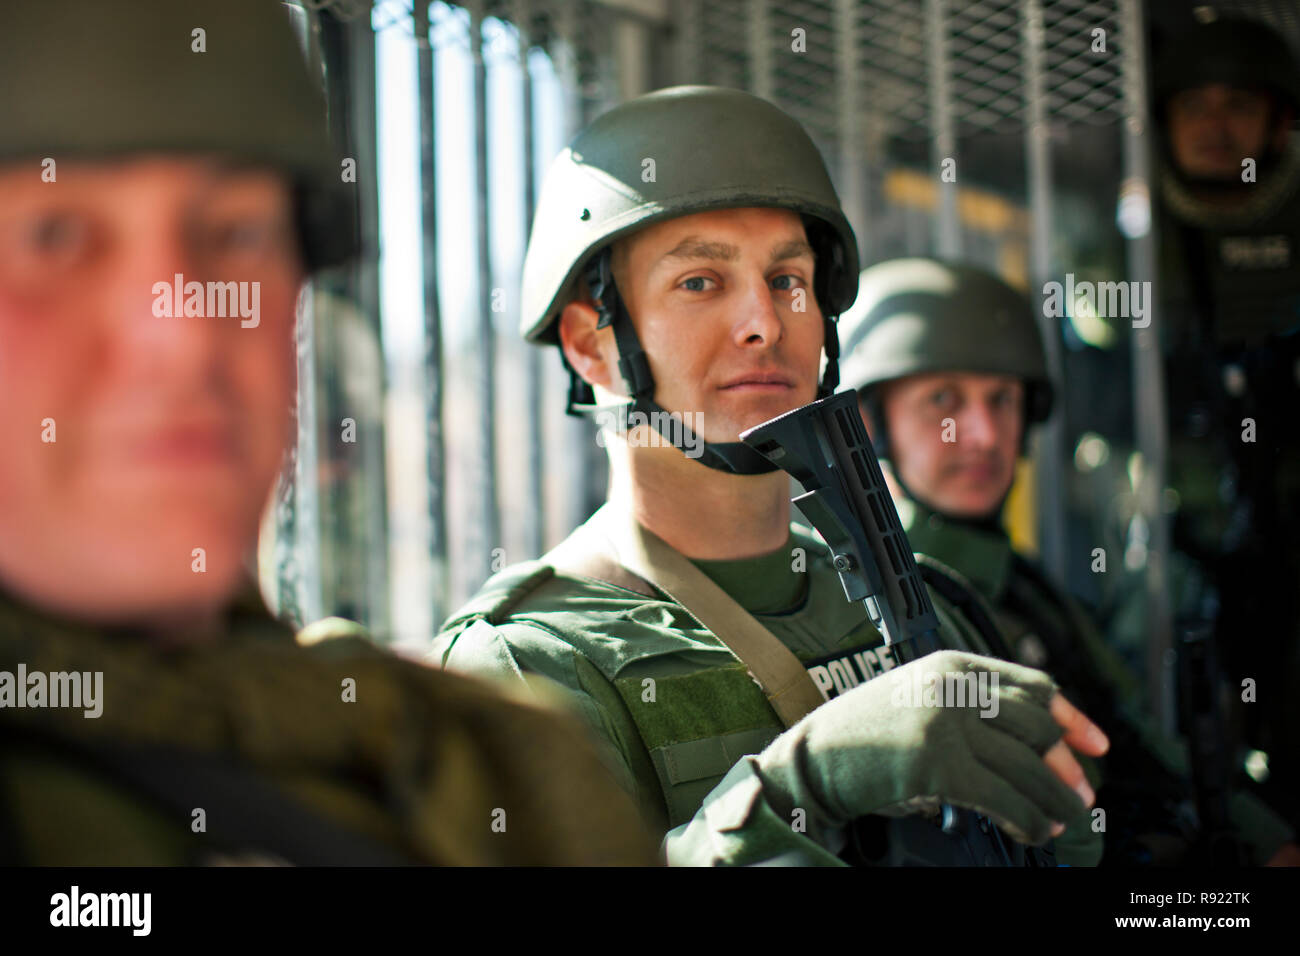 Portrait of three police officers at a training facility. - Stock Image